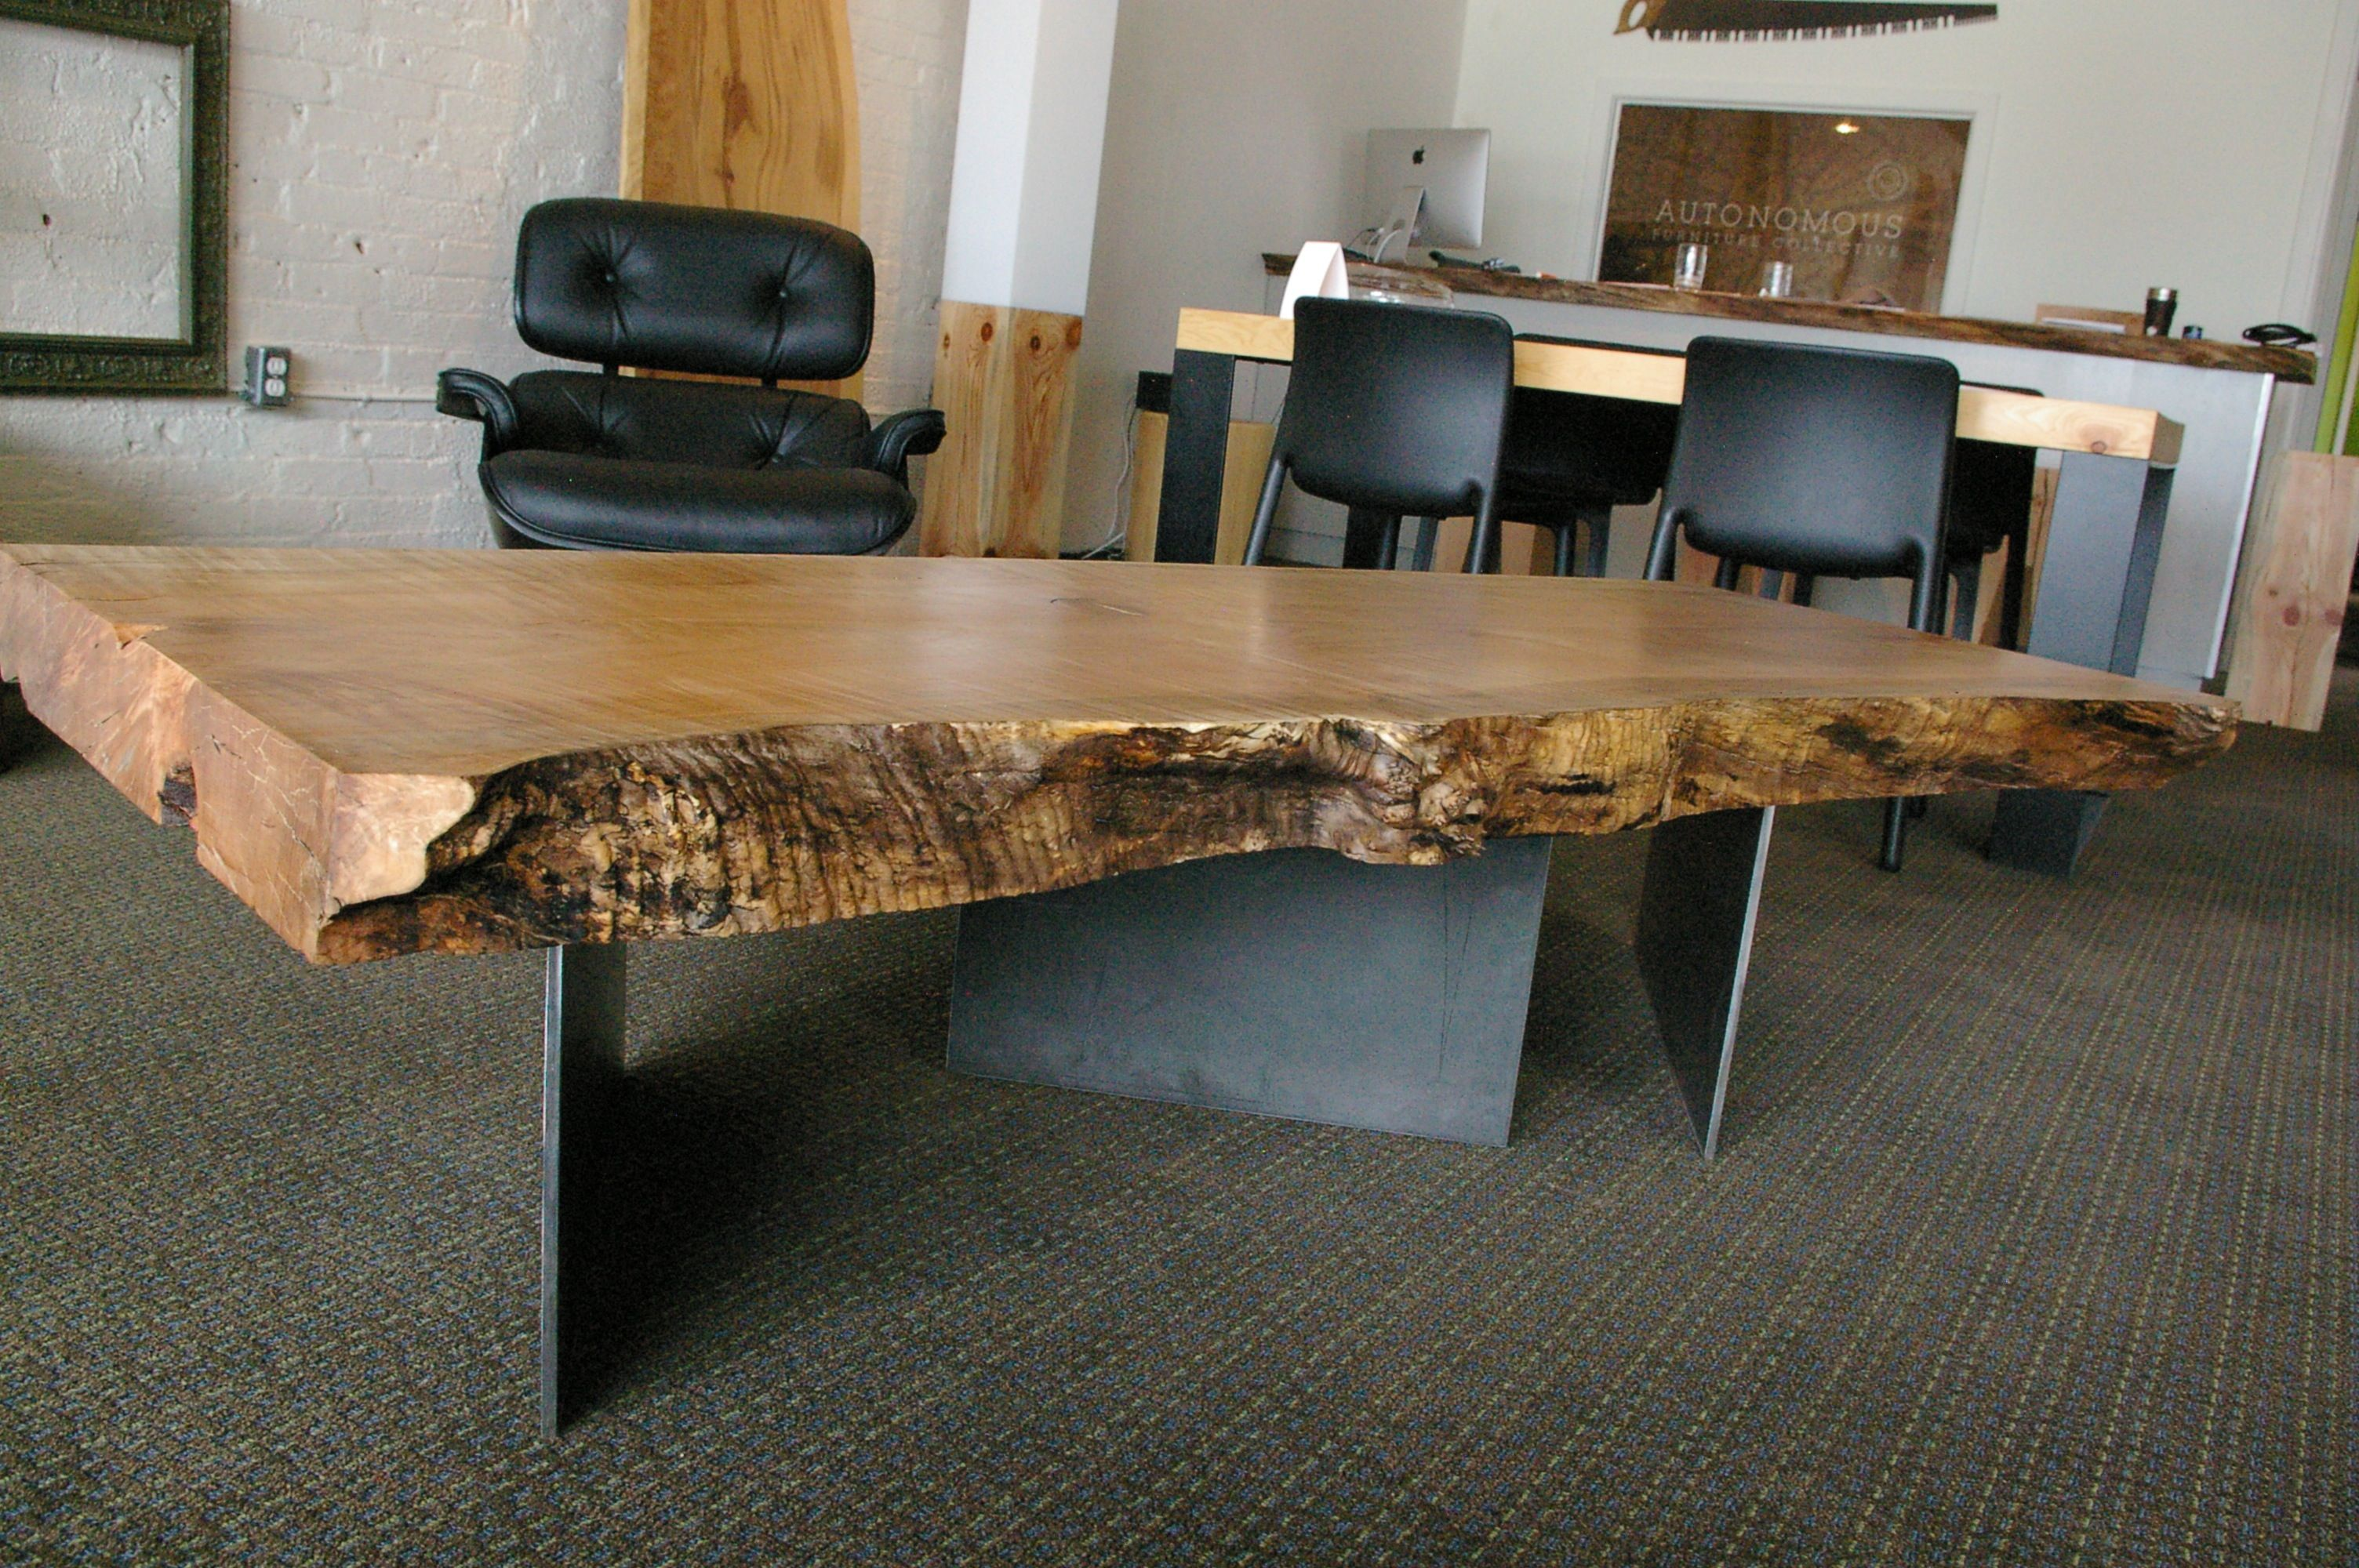 Rested Table Western Maple Slab From Vancouver Island Bc Canada Set On Steel Plate Legs Designed And Made By Kirk Van Ludwig Coffee Table Table Furniture [ 2000 x 3008 Pixel ]